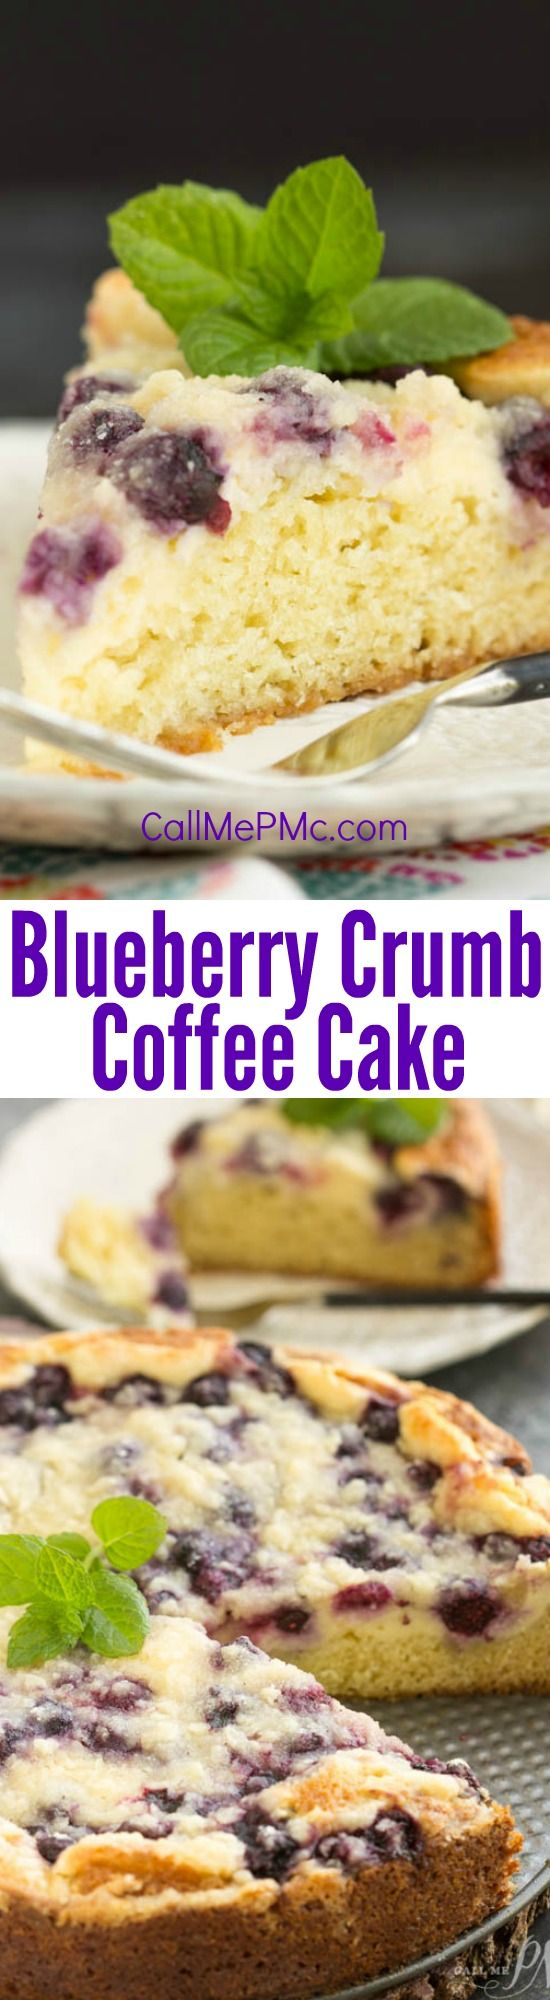 47 best coffee cakes images on Pinterest | Petit fours, Recipes for ...